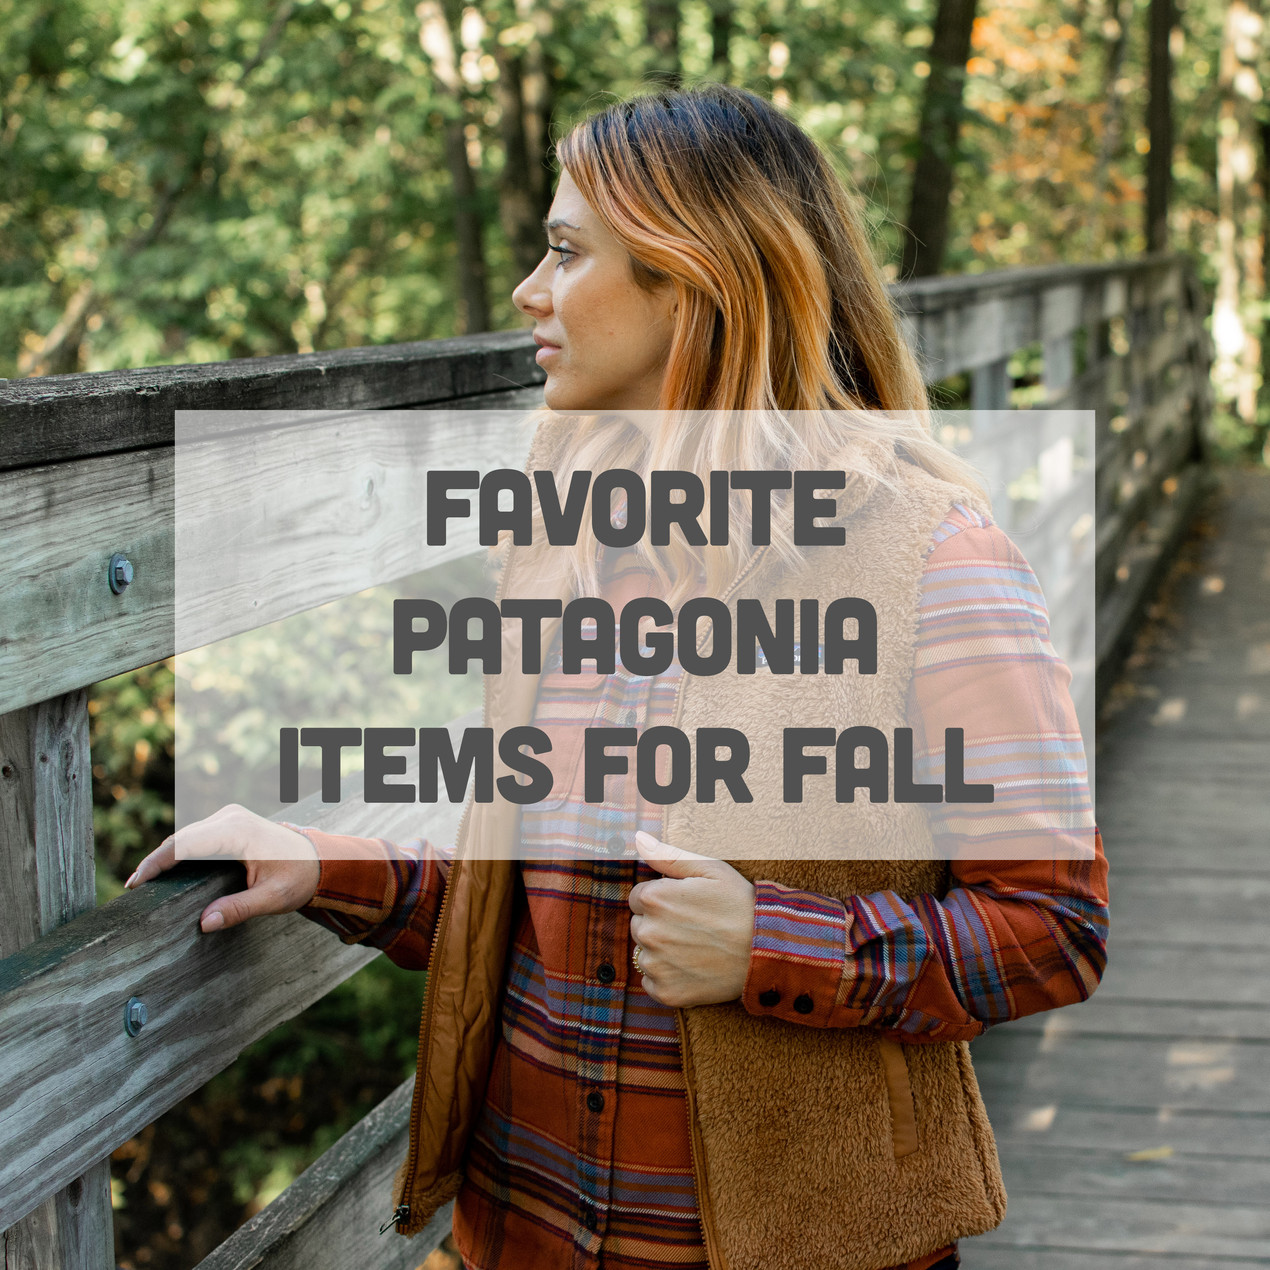 Favorite Patagonia Items for Fall